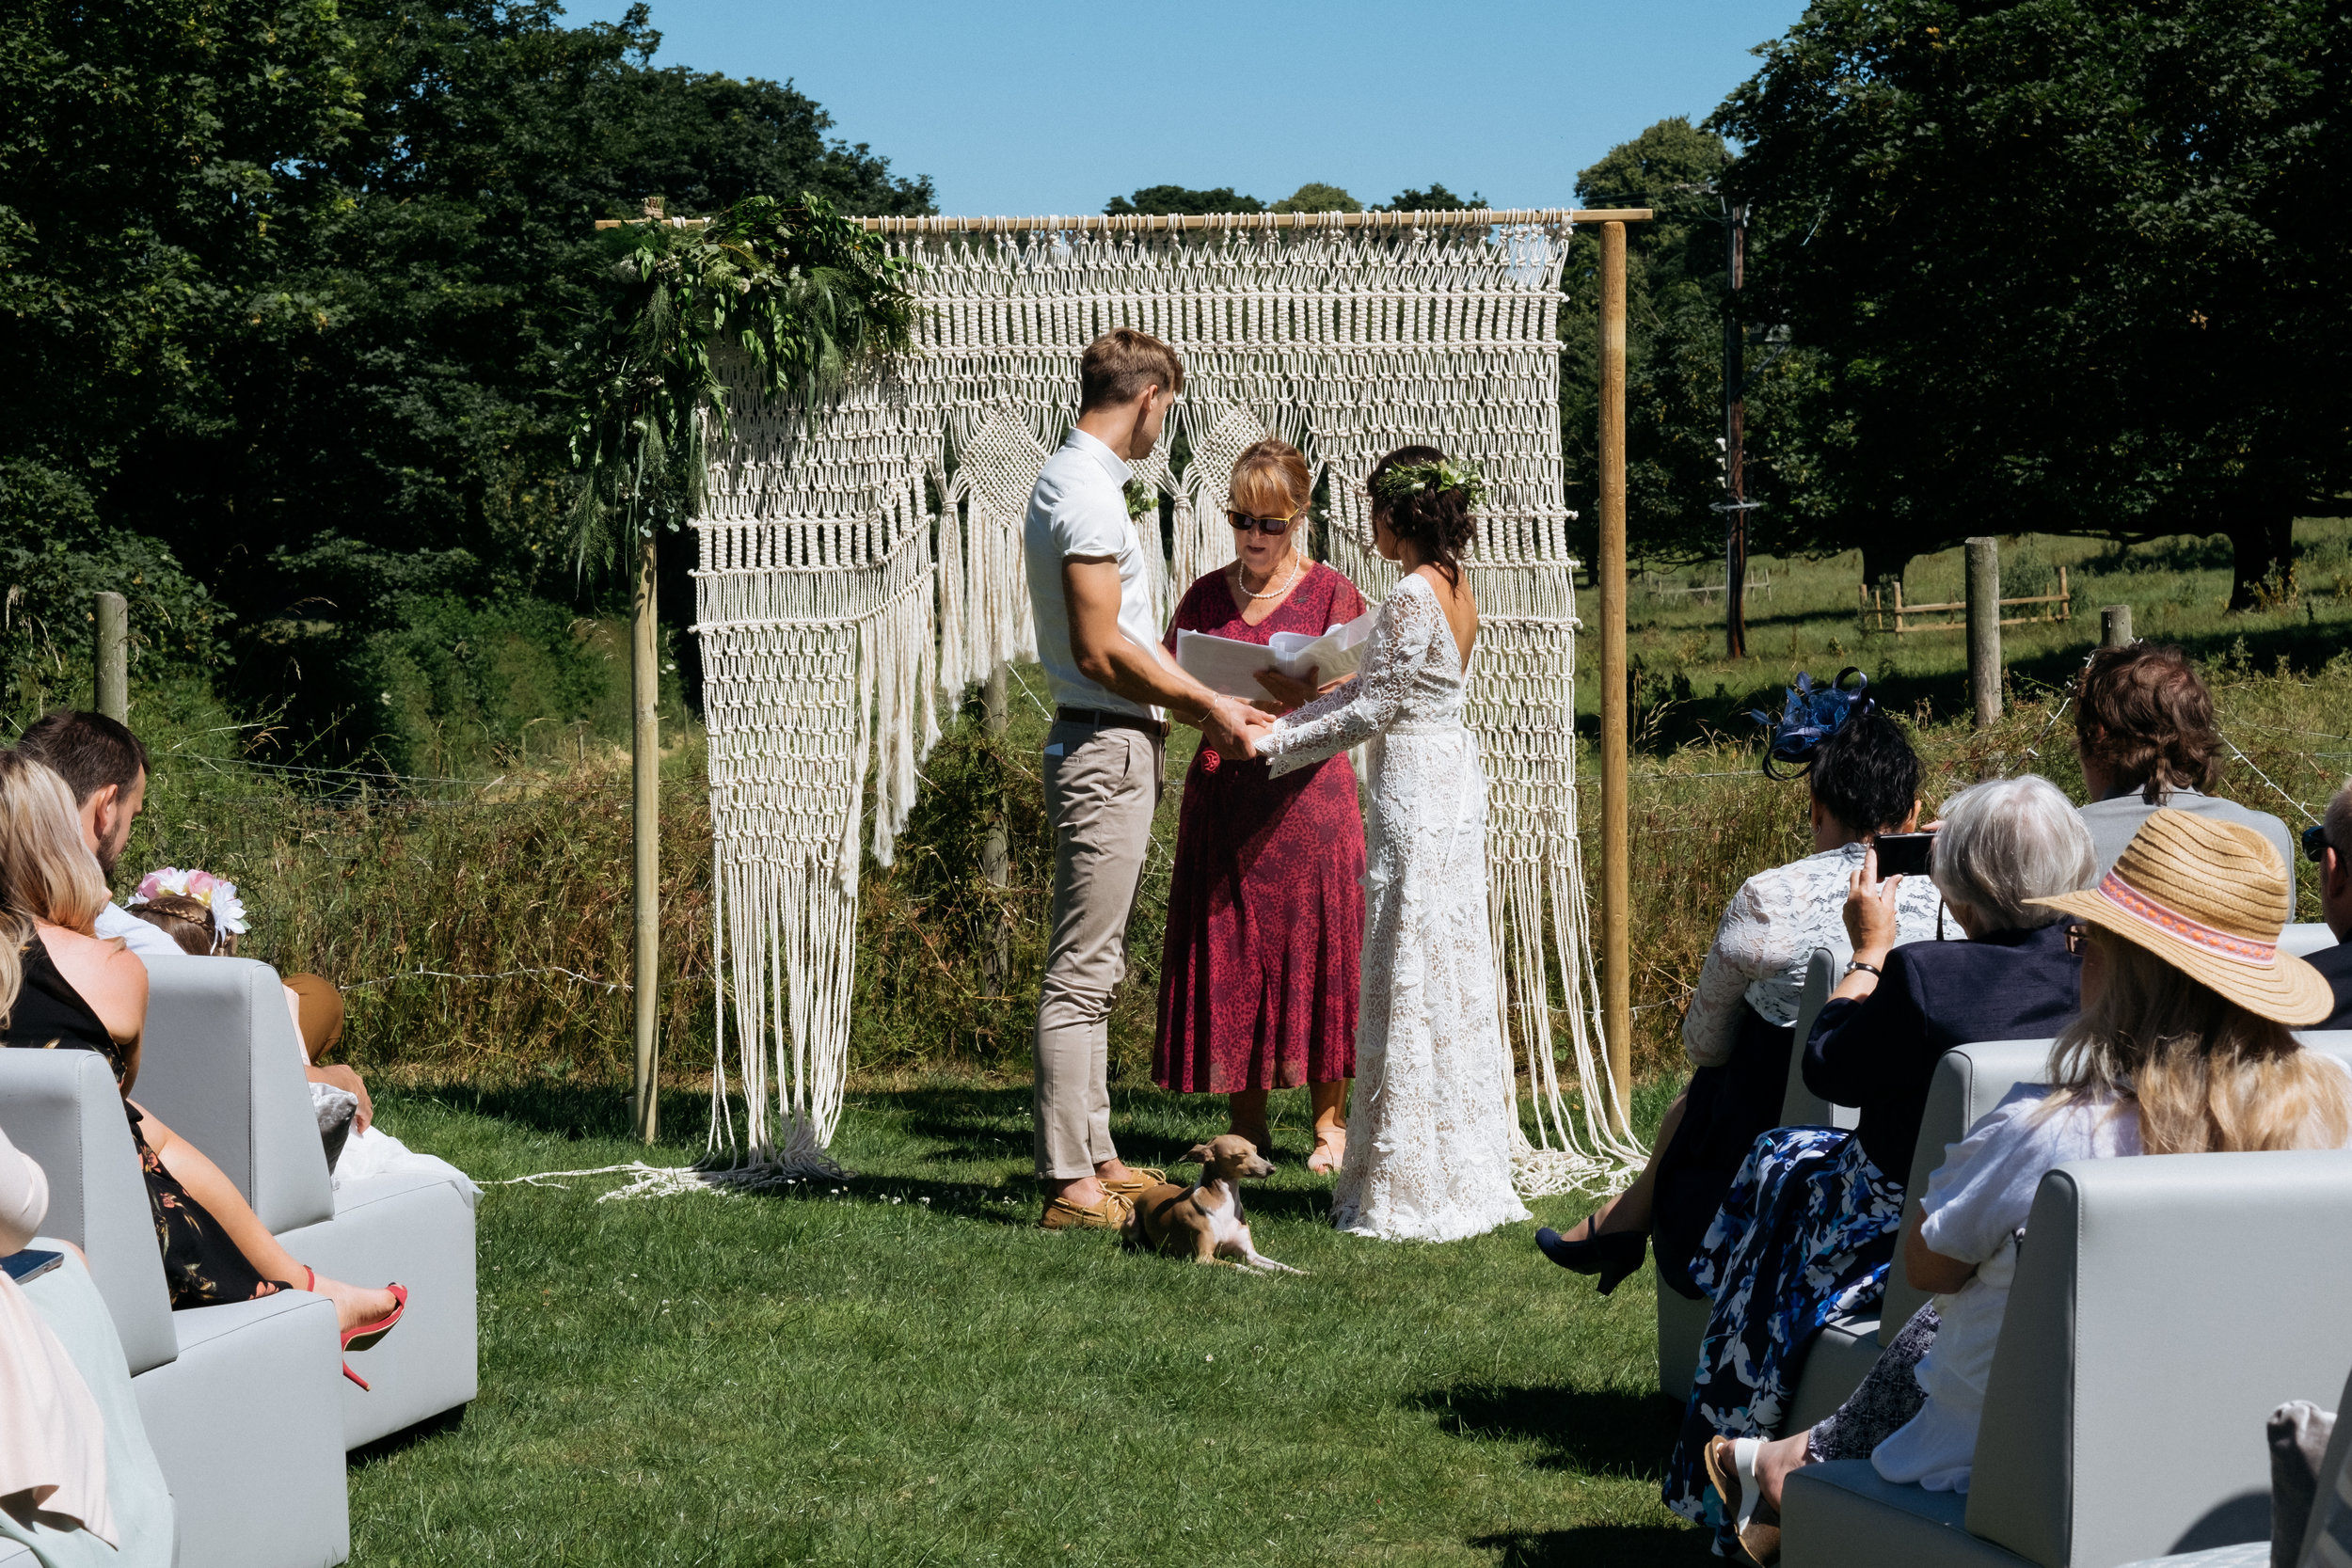 Bride and groom exchanging vows during outdoor wedding ceremony with macrame wedding arch and countryside views